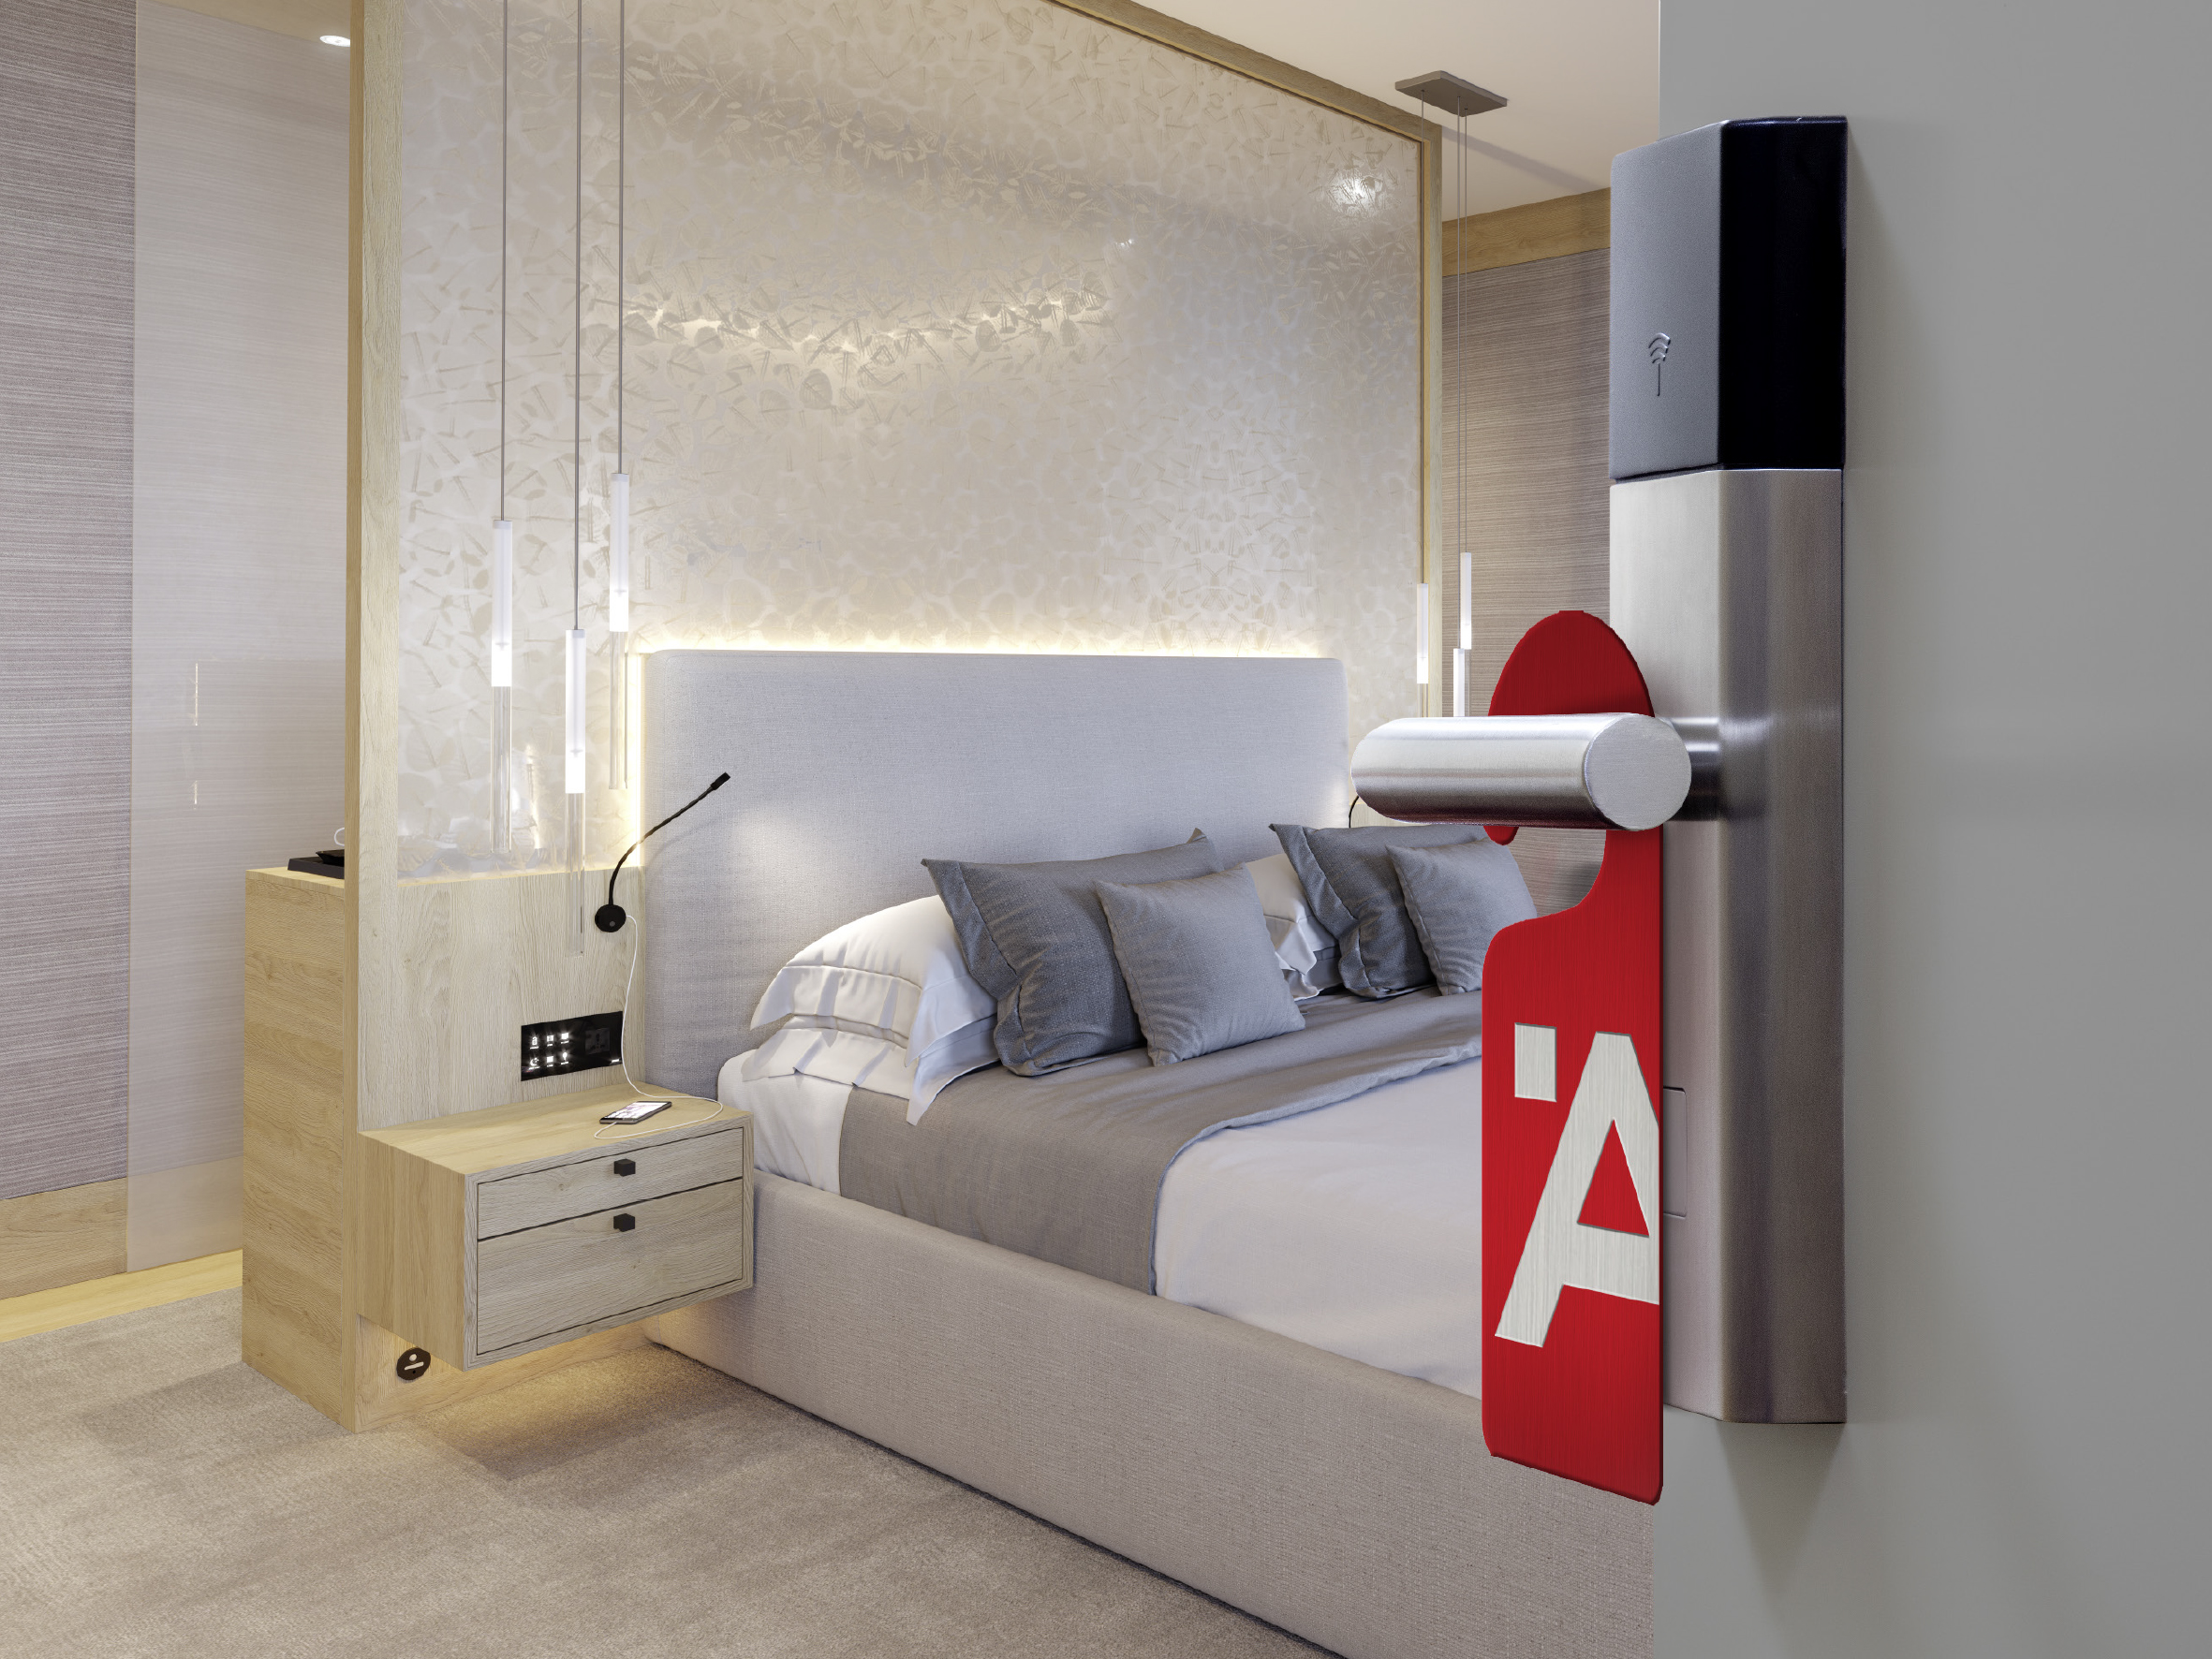 One Room, one Face – one Style. Häfele creates the optimum prerequisites for target group-oriented equipping of hotel rooms with its internationally available hotel assortment consisting of more than 200 products.